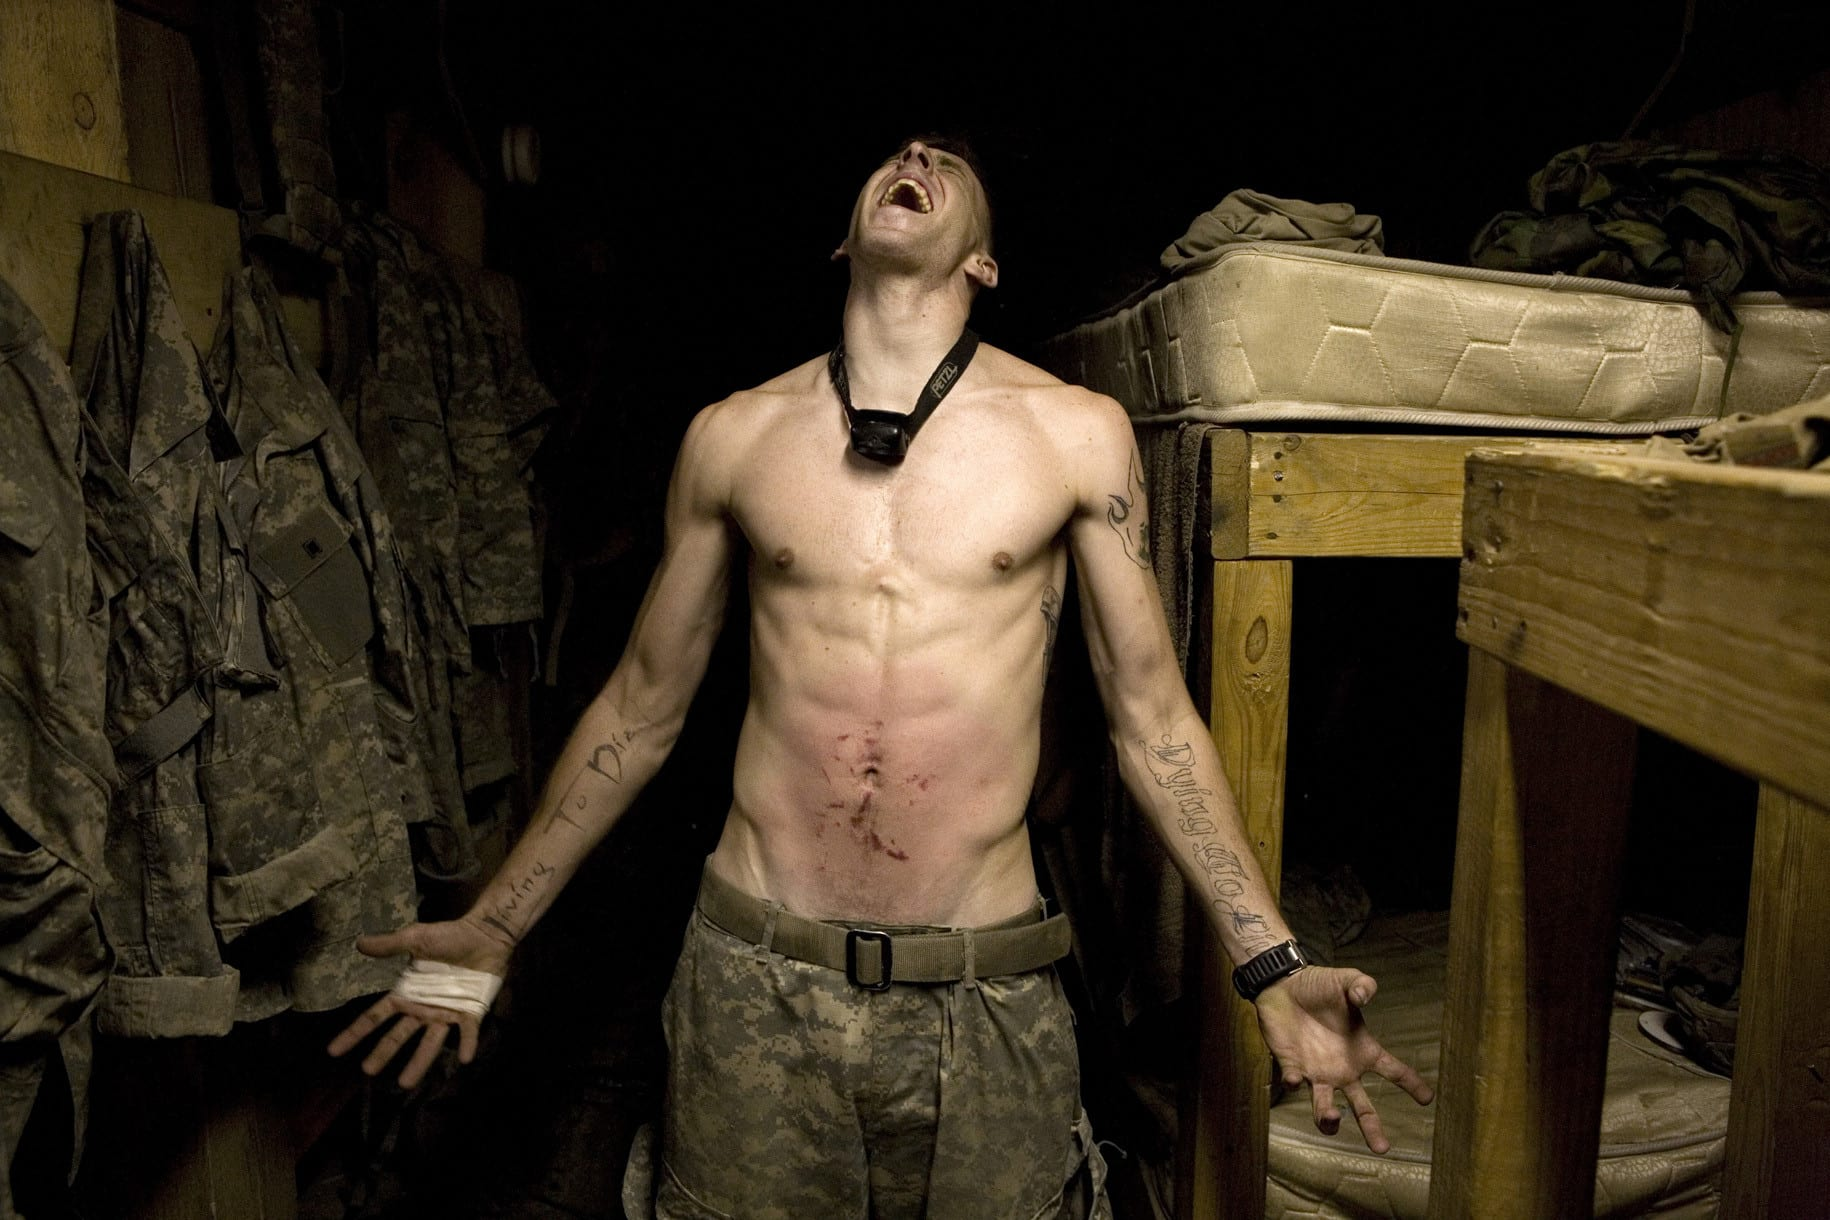 Specialist Tad Donoho screams with pain following being administered a 'pink belly' for his birthday. Each member of the platoon strikes his stomach until blood can be seen to rise, hence the name 'pink belly'. Korengal Valley, Kunar Province, Afghanistan. July 2008.